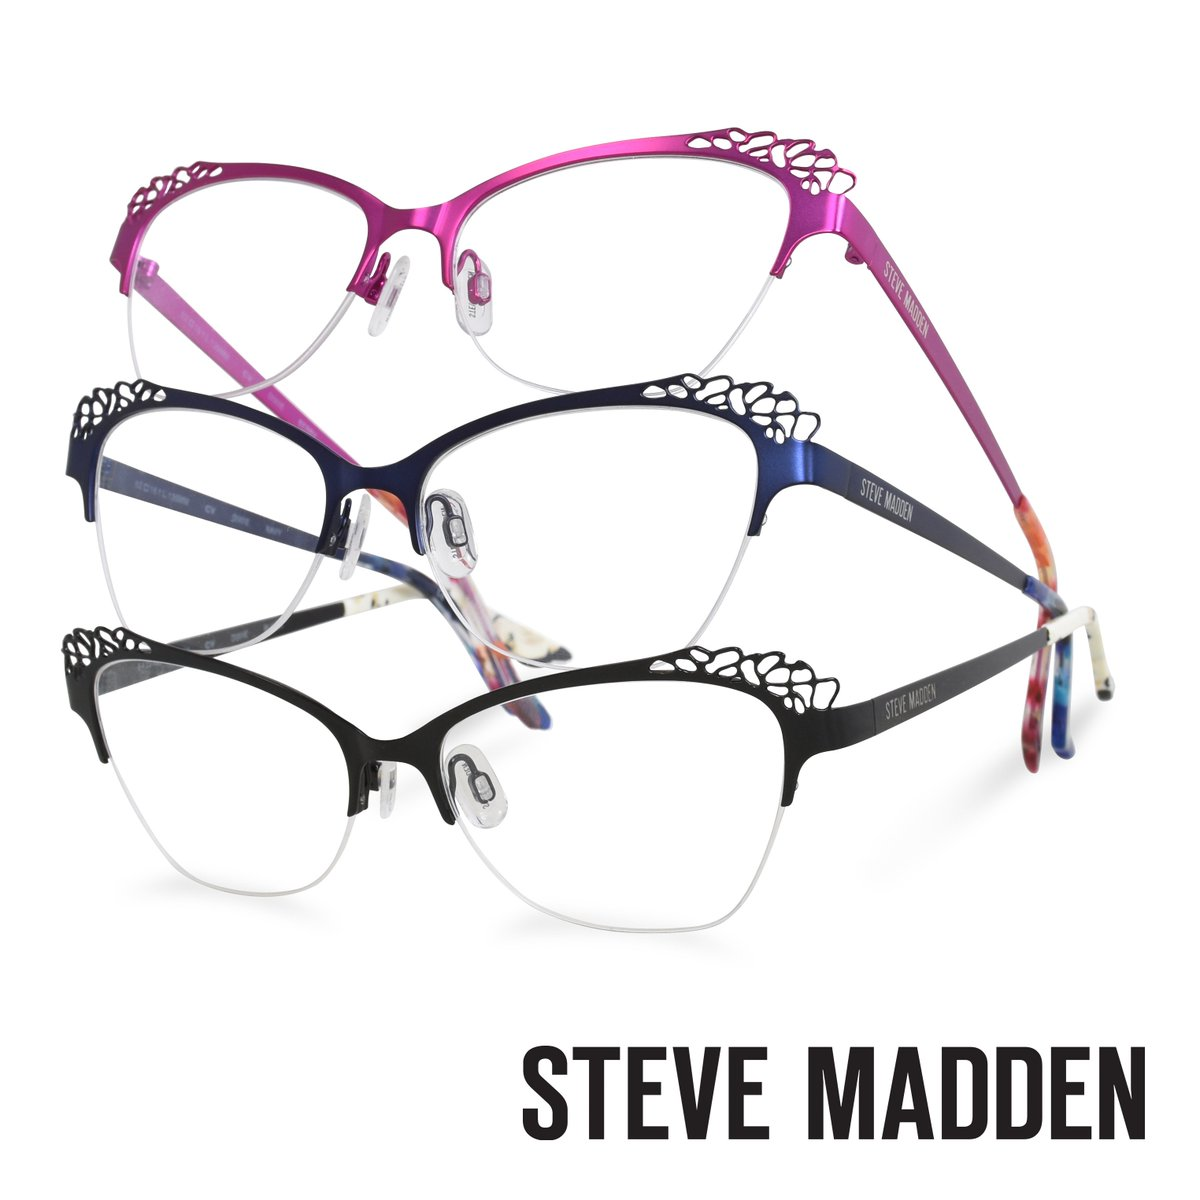 3d0e933bc61d9  SteveMadden  cvoptical  fashion  eyewear Check out what s new from Steve  Madden  http   bit.ly 2RwjAa0 pic.twitter.com dTMxyXYVtv